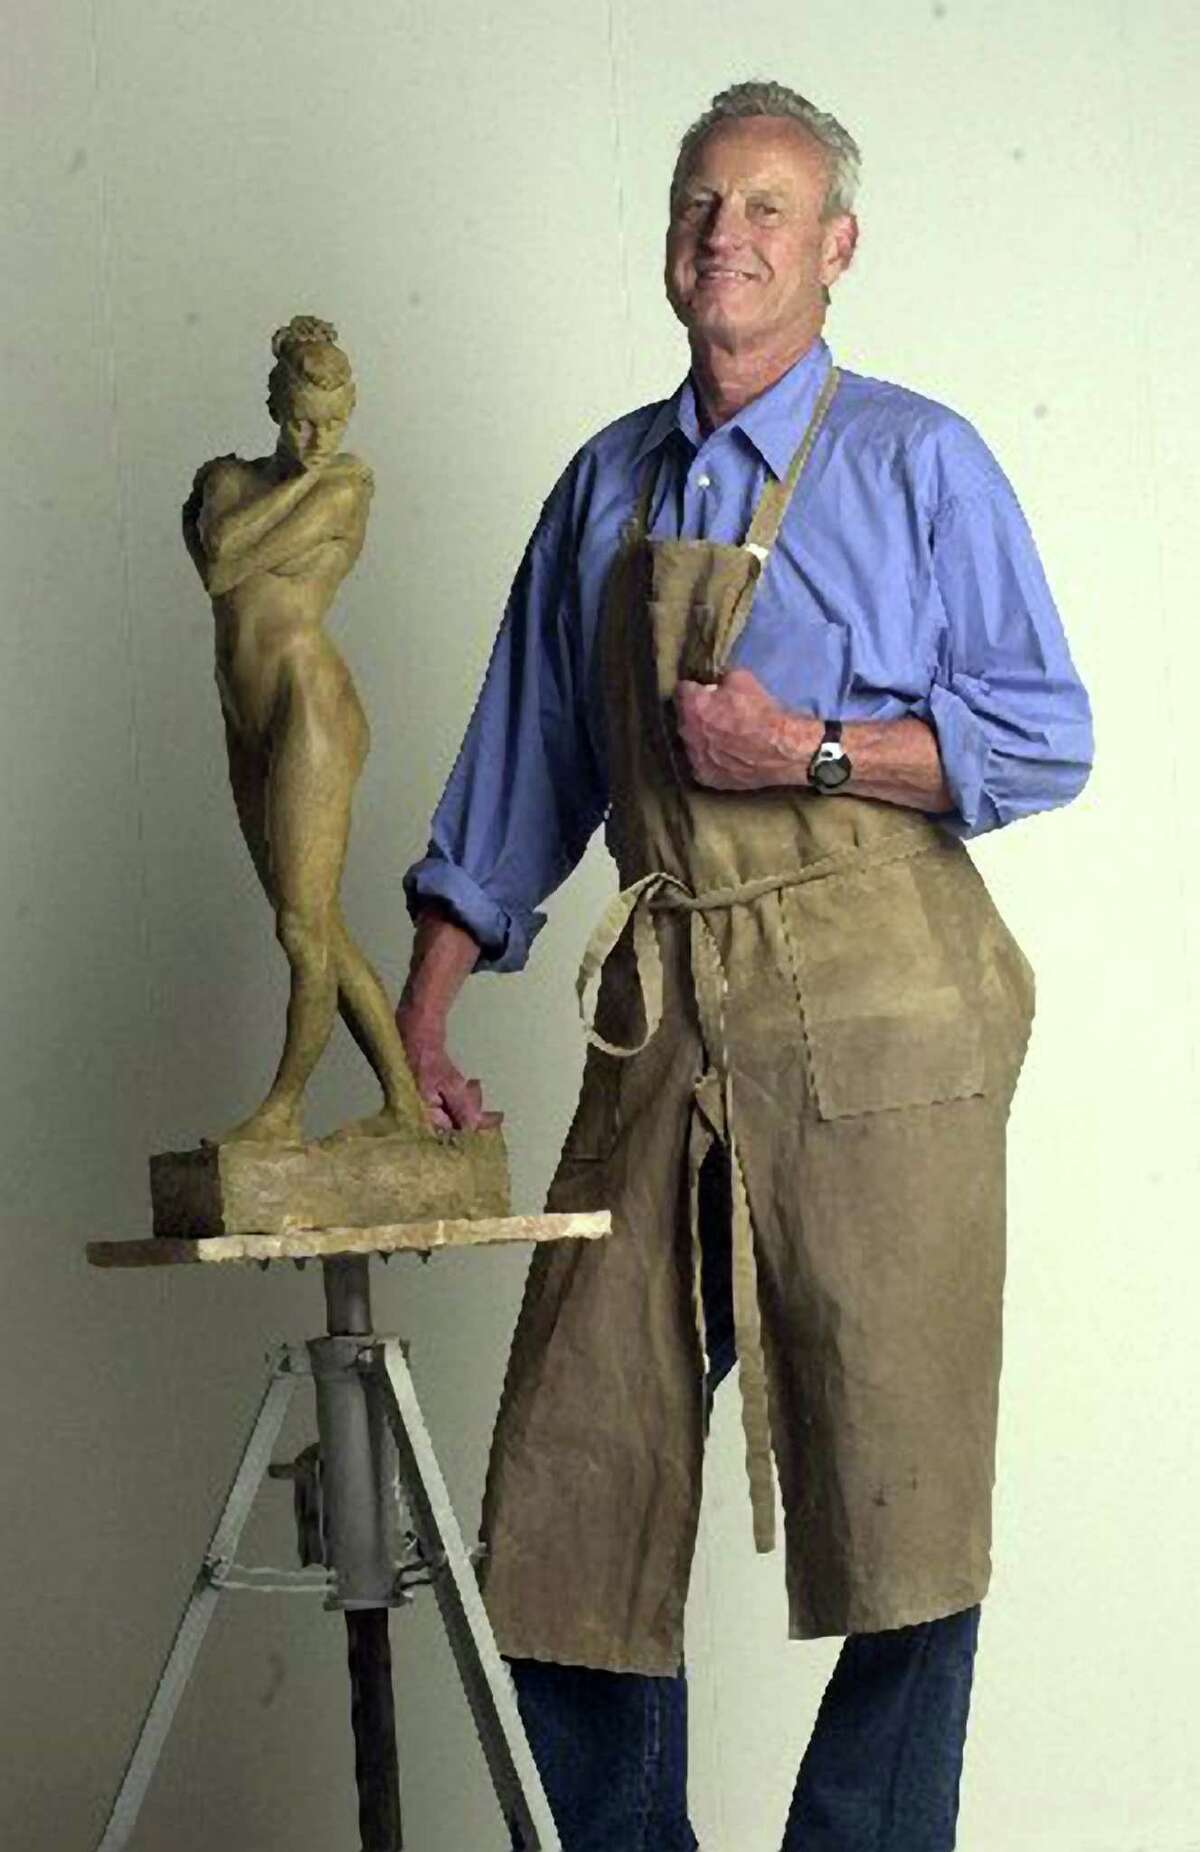 Bruce Wolfe works on a small sculpture